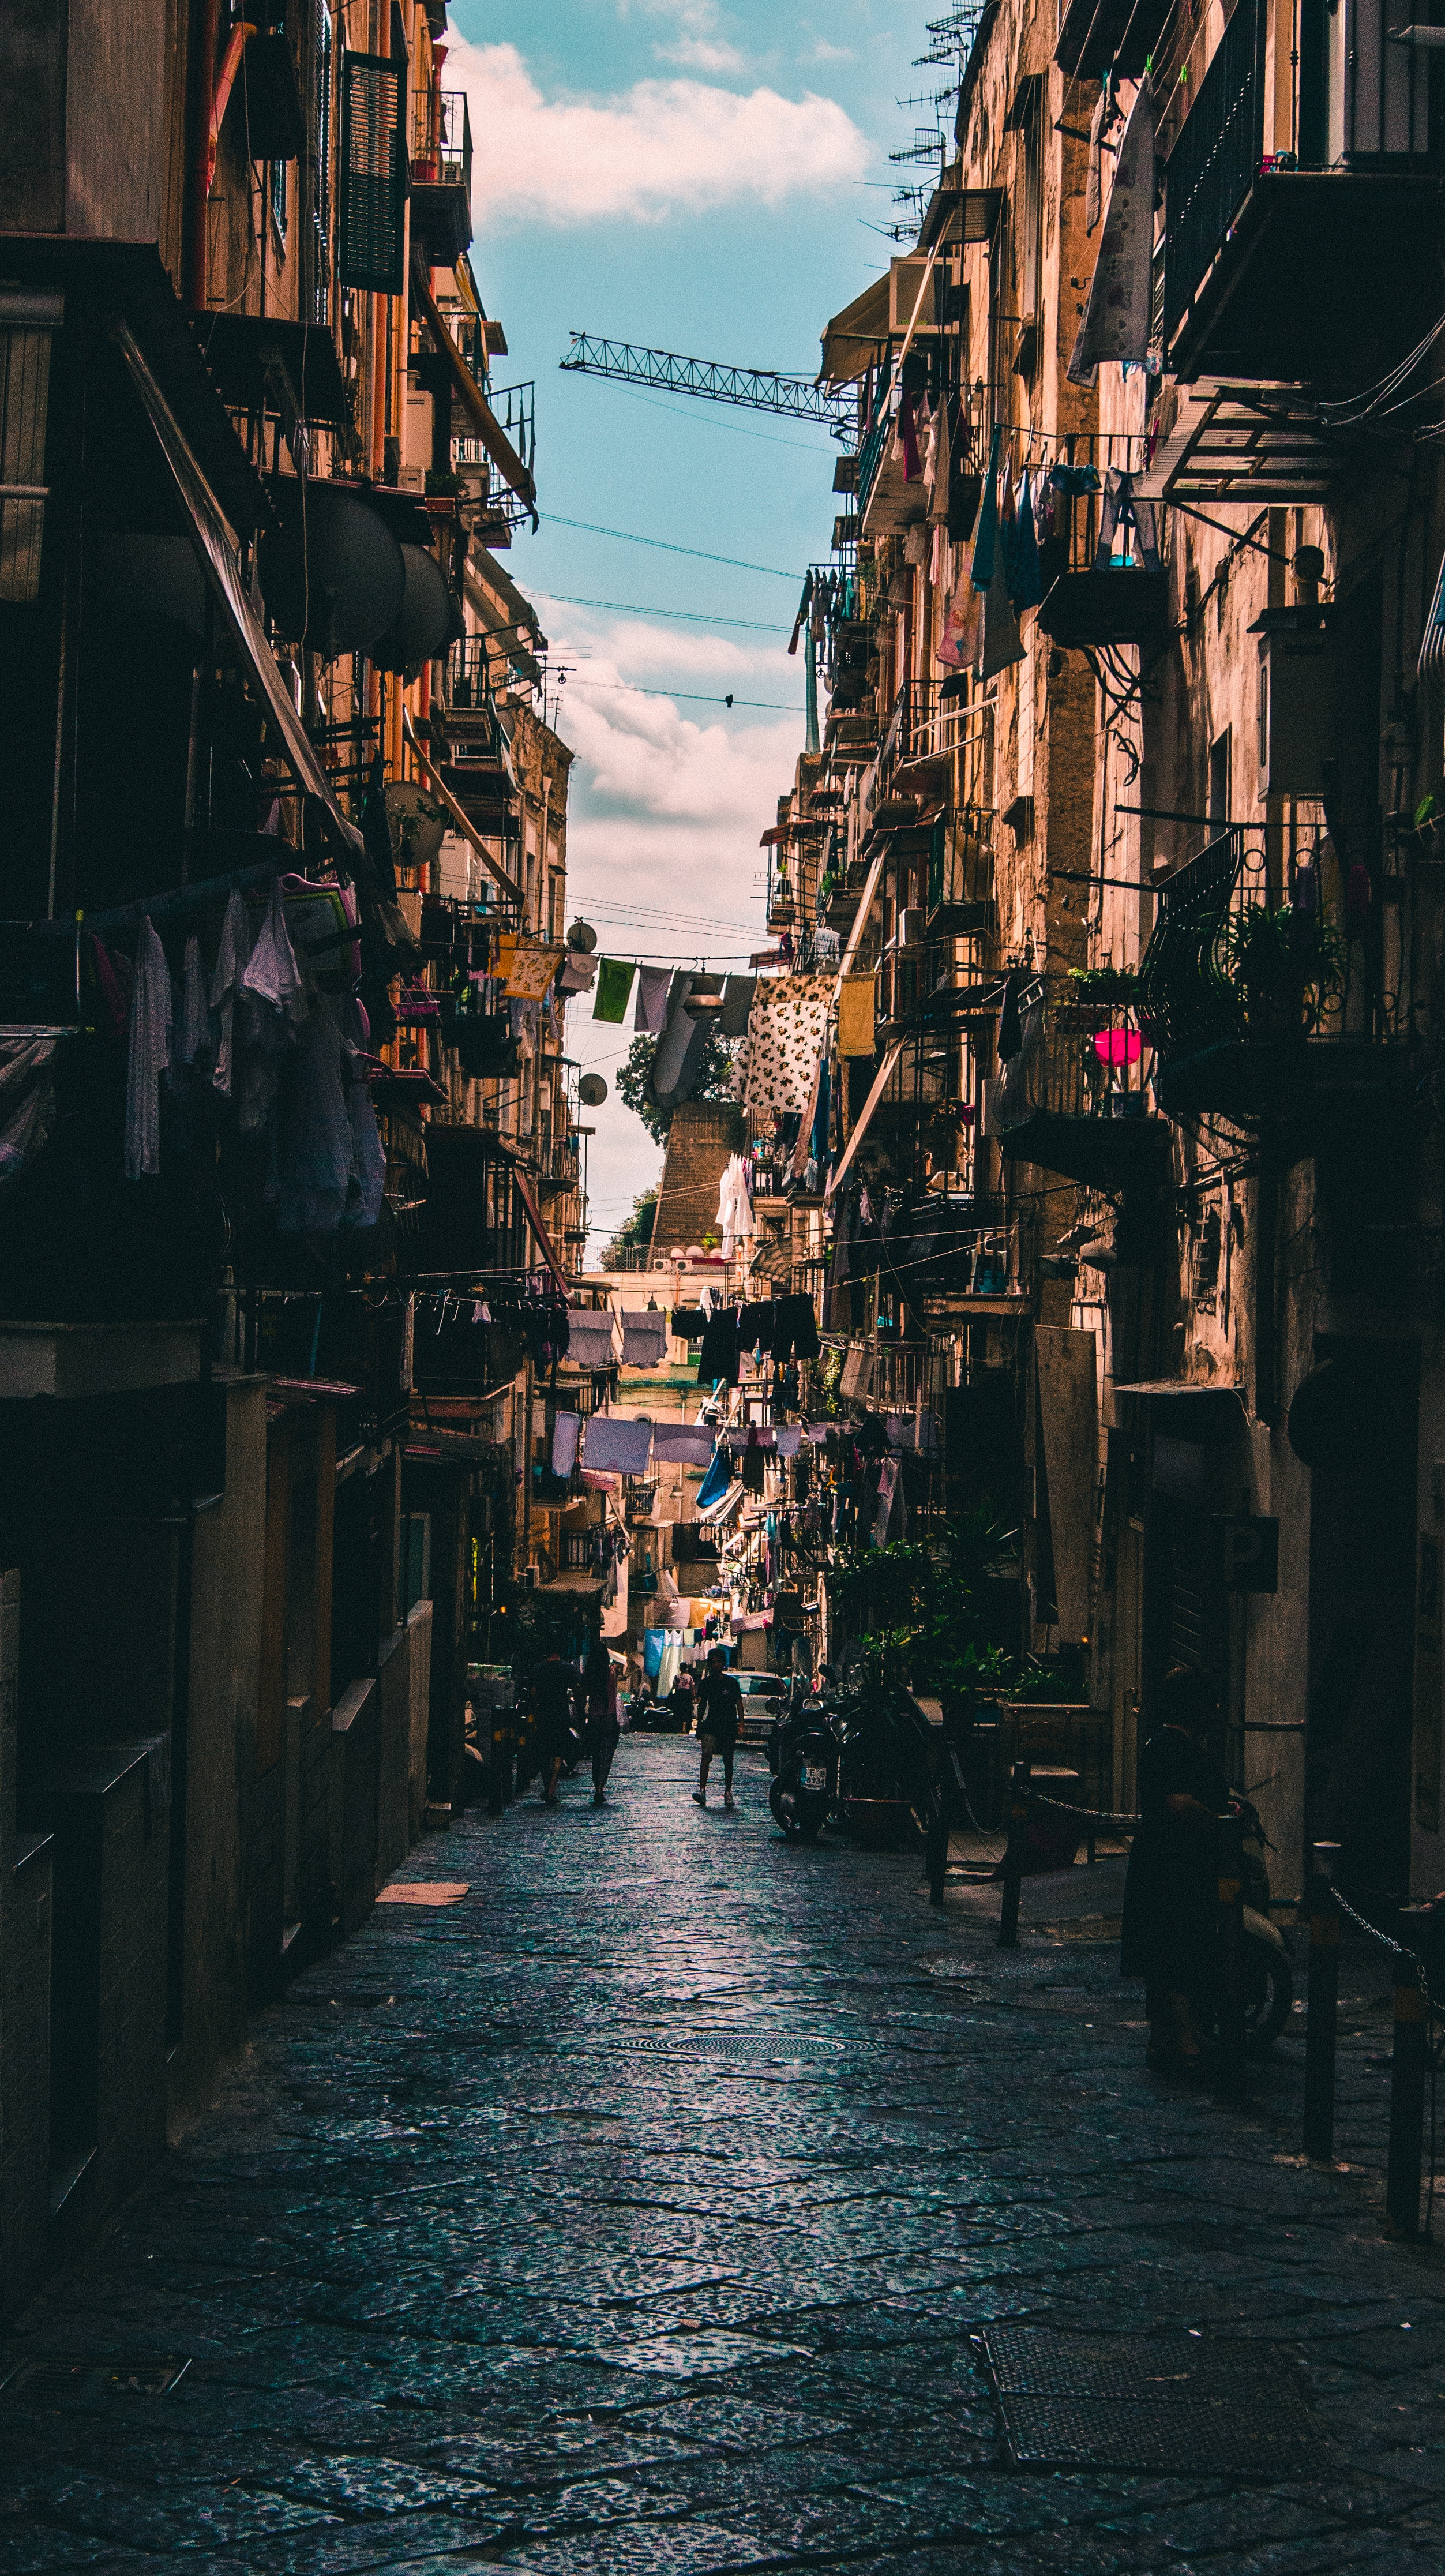 The King of Naples